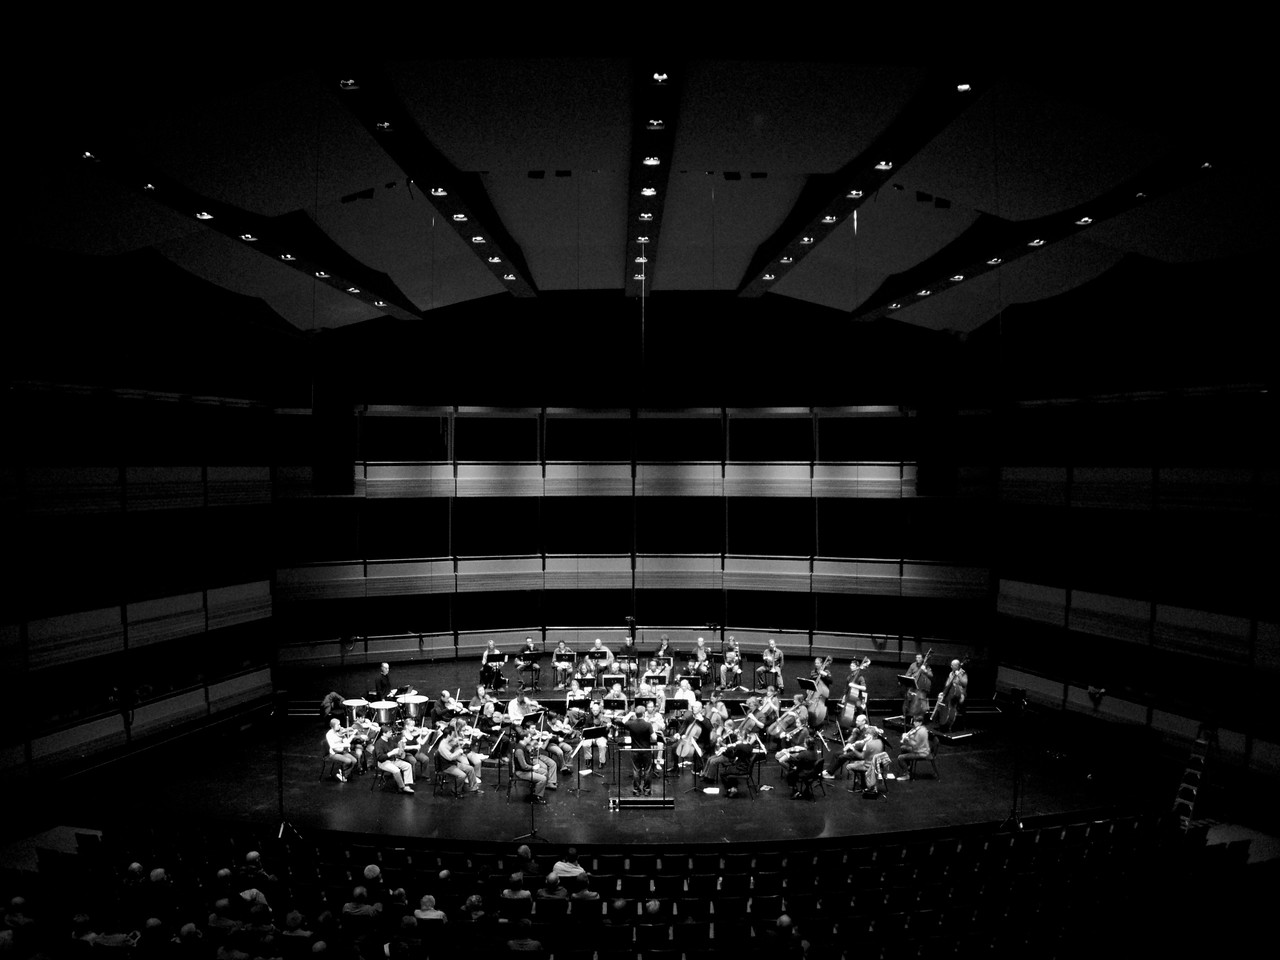 The Kitchener-Waterloo Symphony conducted by Music Director Edwin Outwater during an open dress rehearsal at the Centre in the Square. B&W wide angle survey shot emphasising architectural features of the hall.